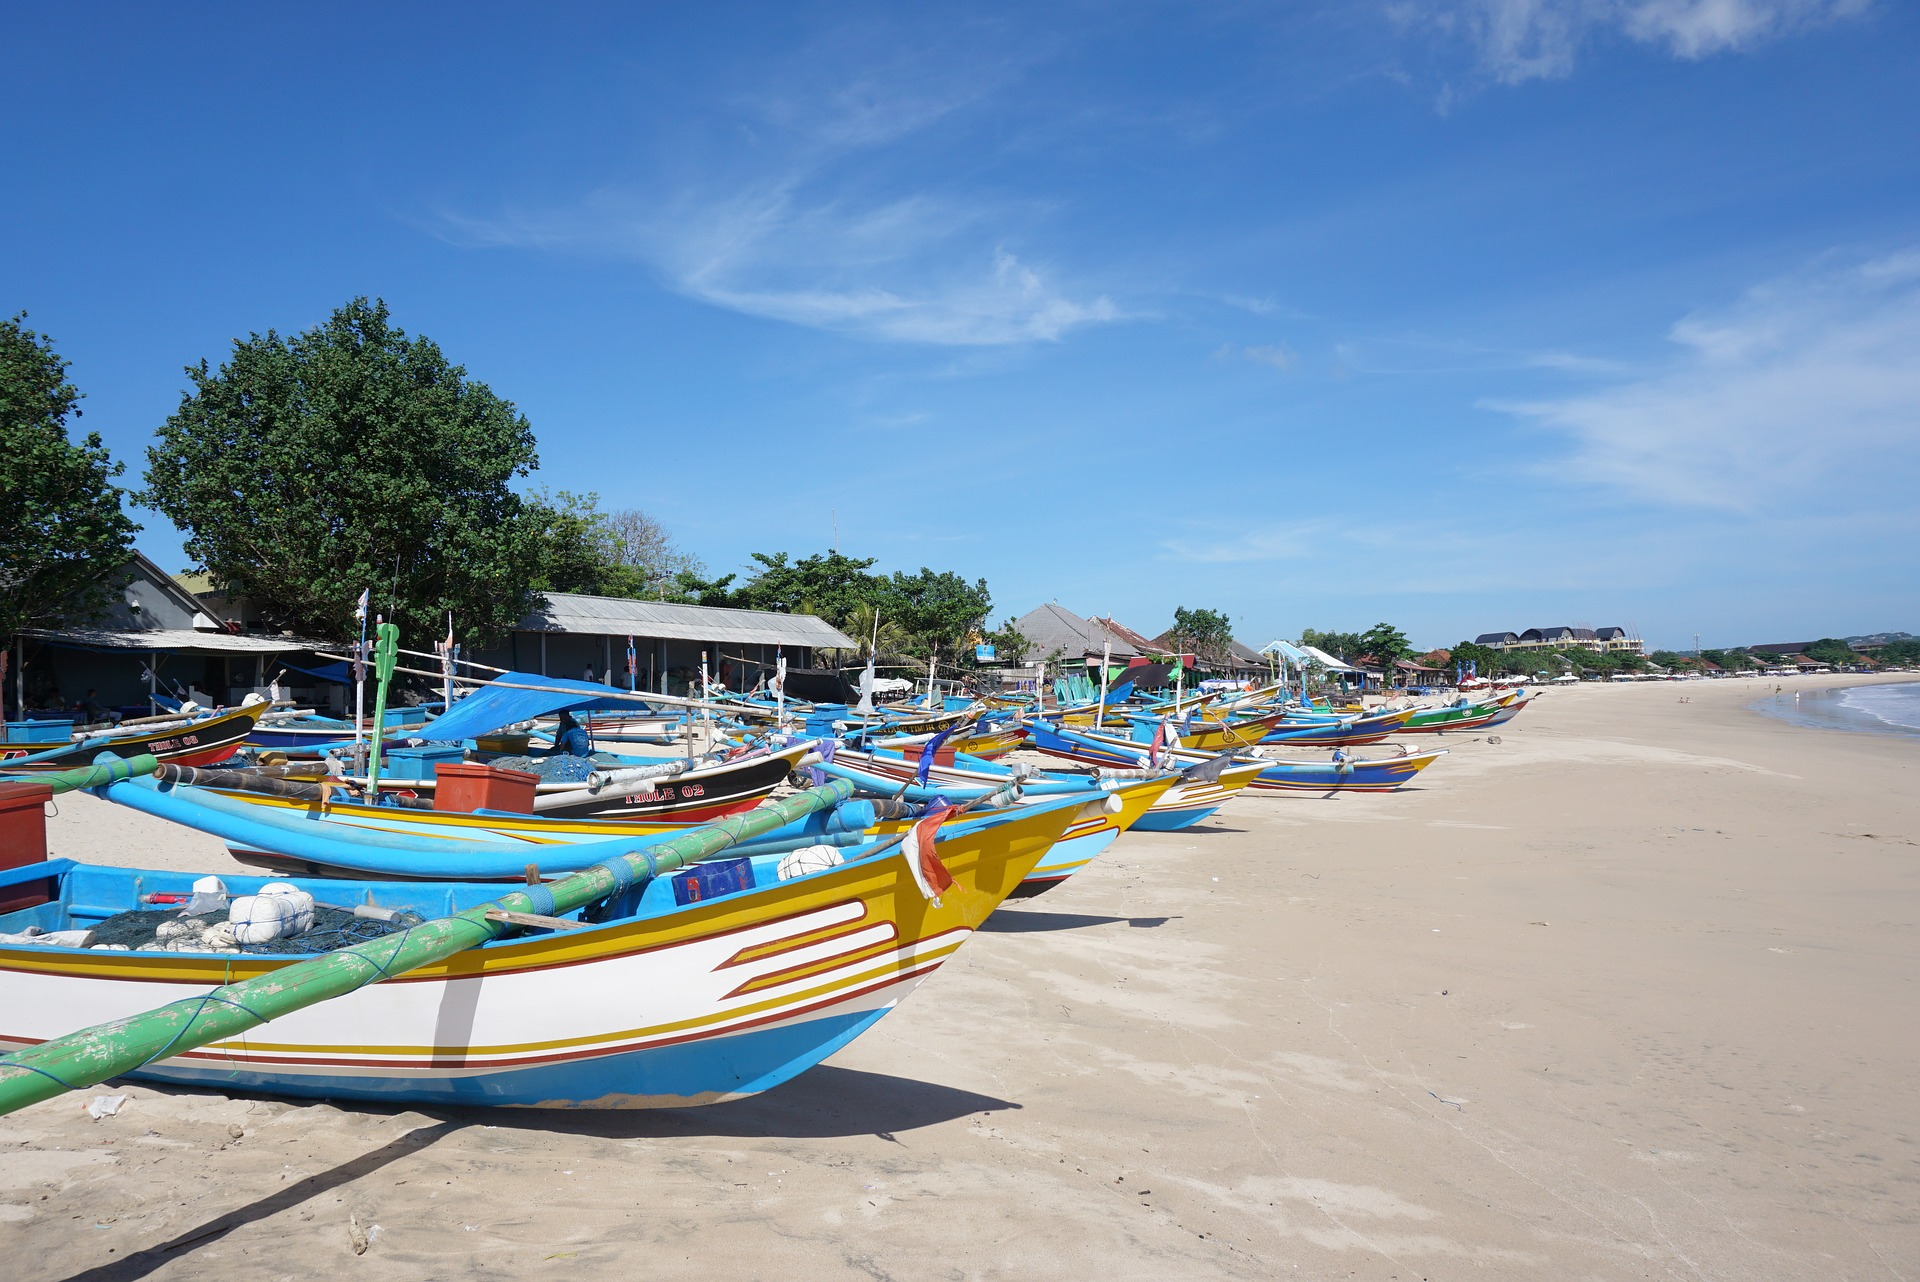 Boats on beach in Bali, Indonesia